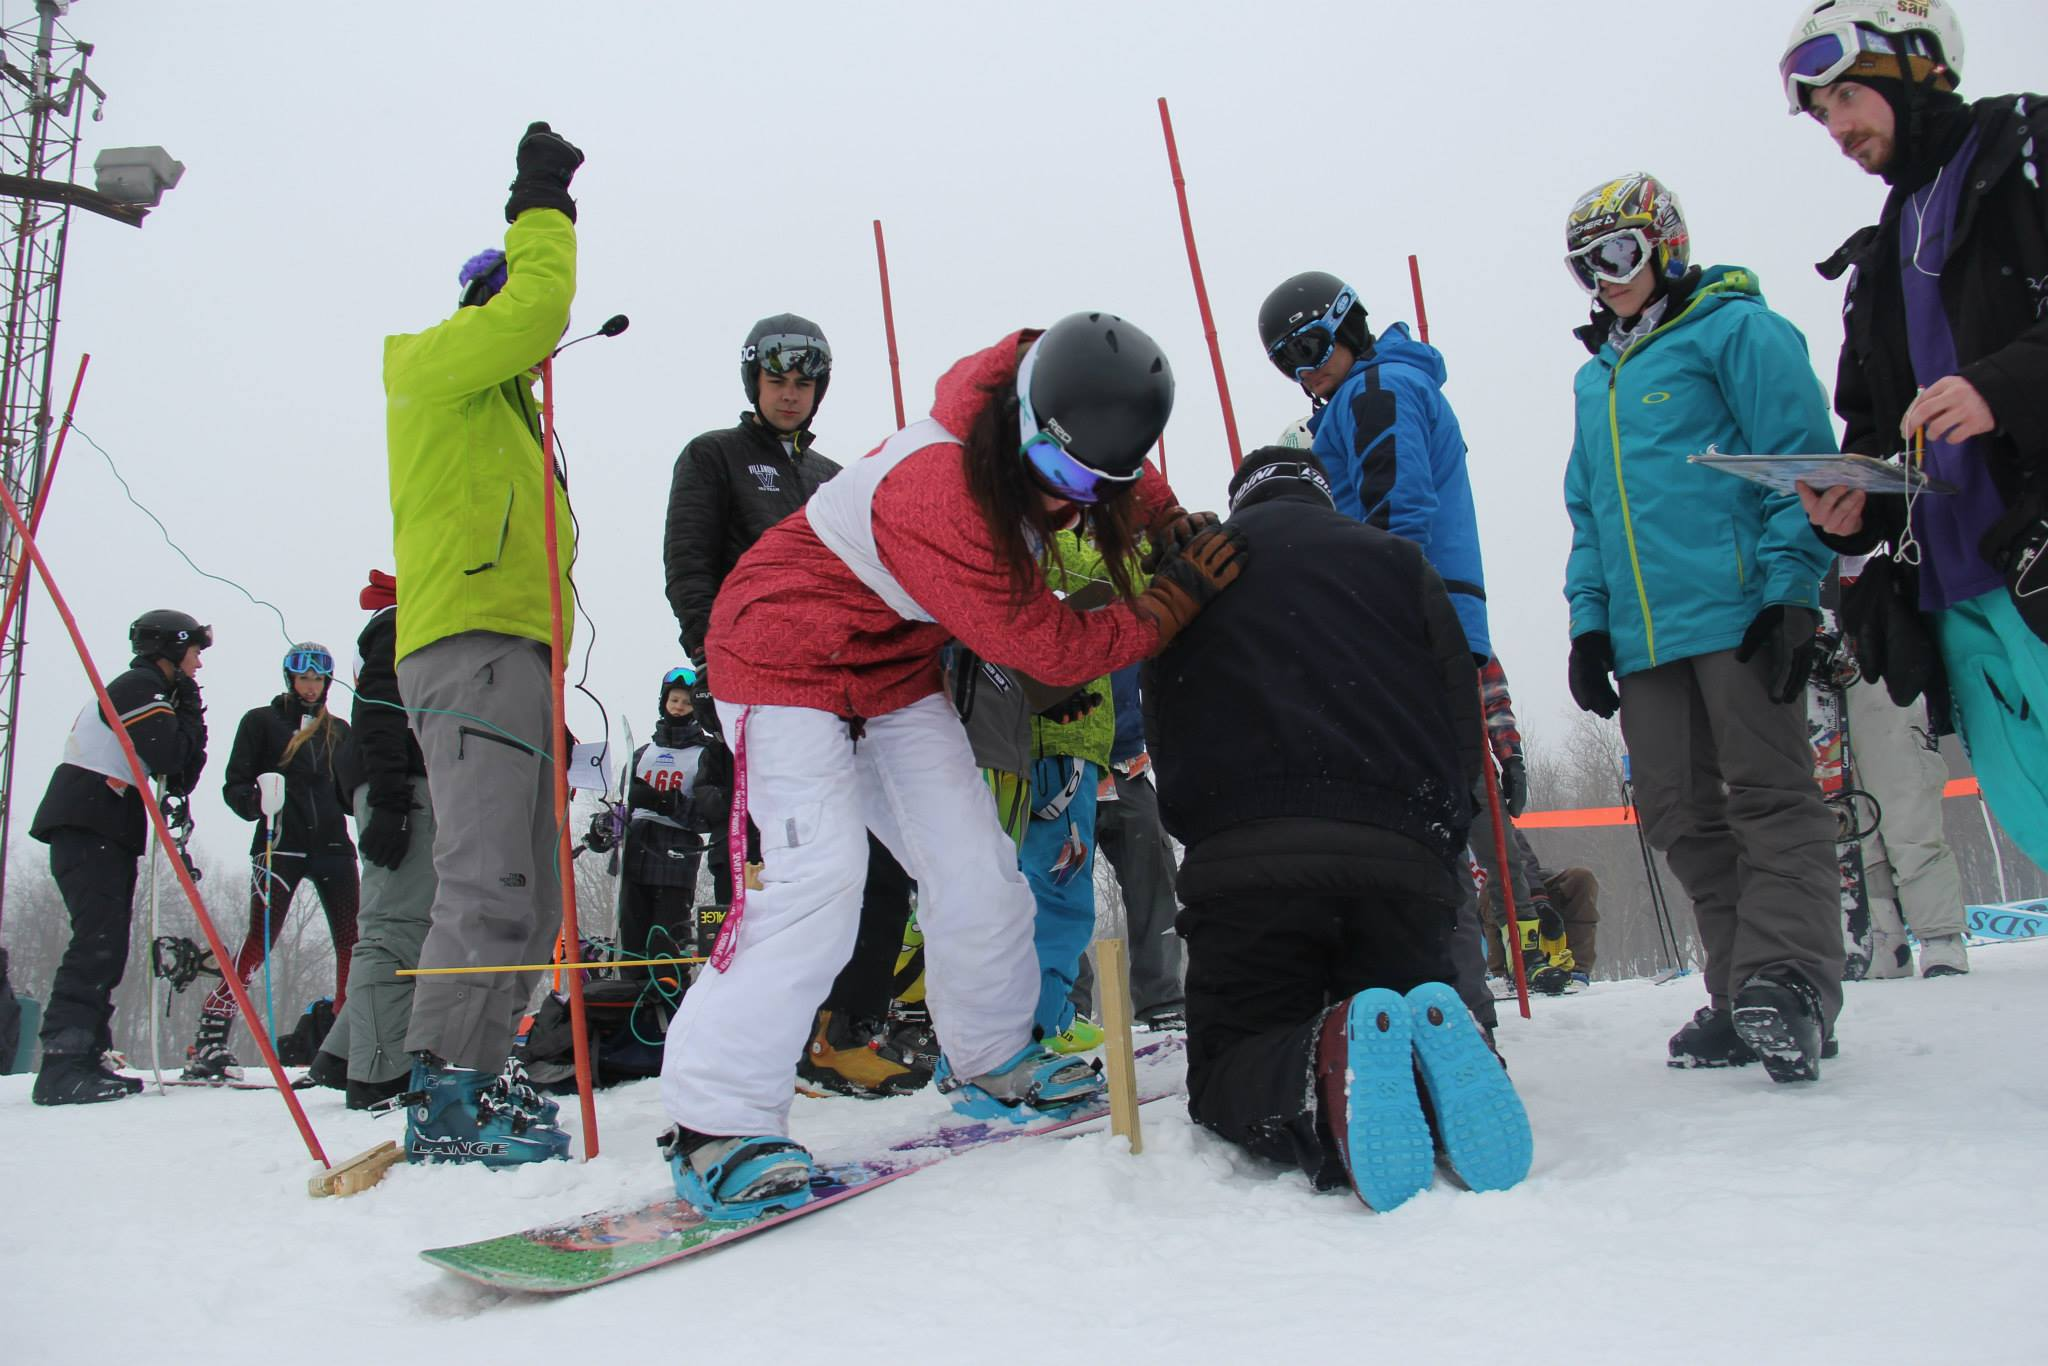 Natalie Wilk readies at the start gate. Photo courtesy of Pitt Ski and Snowboard Club